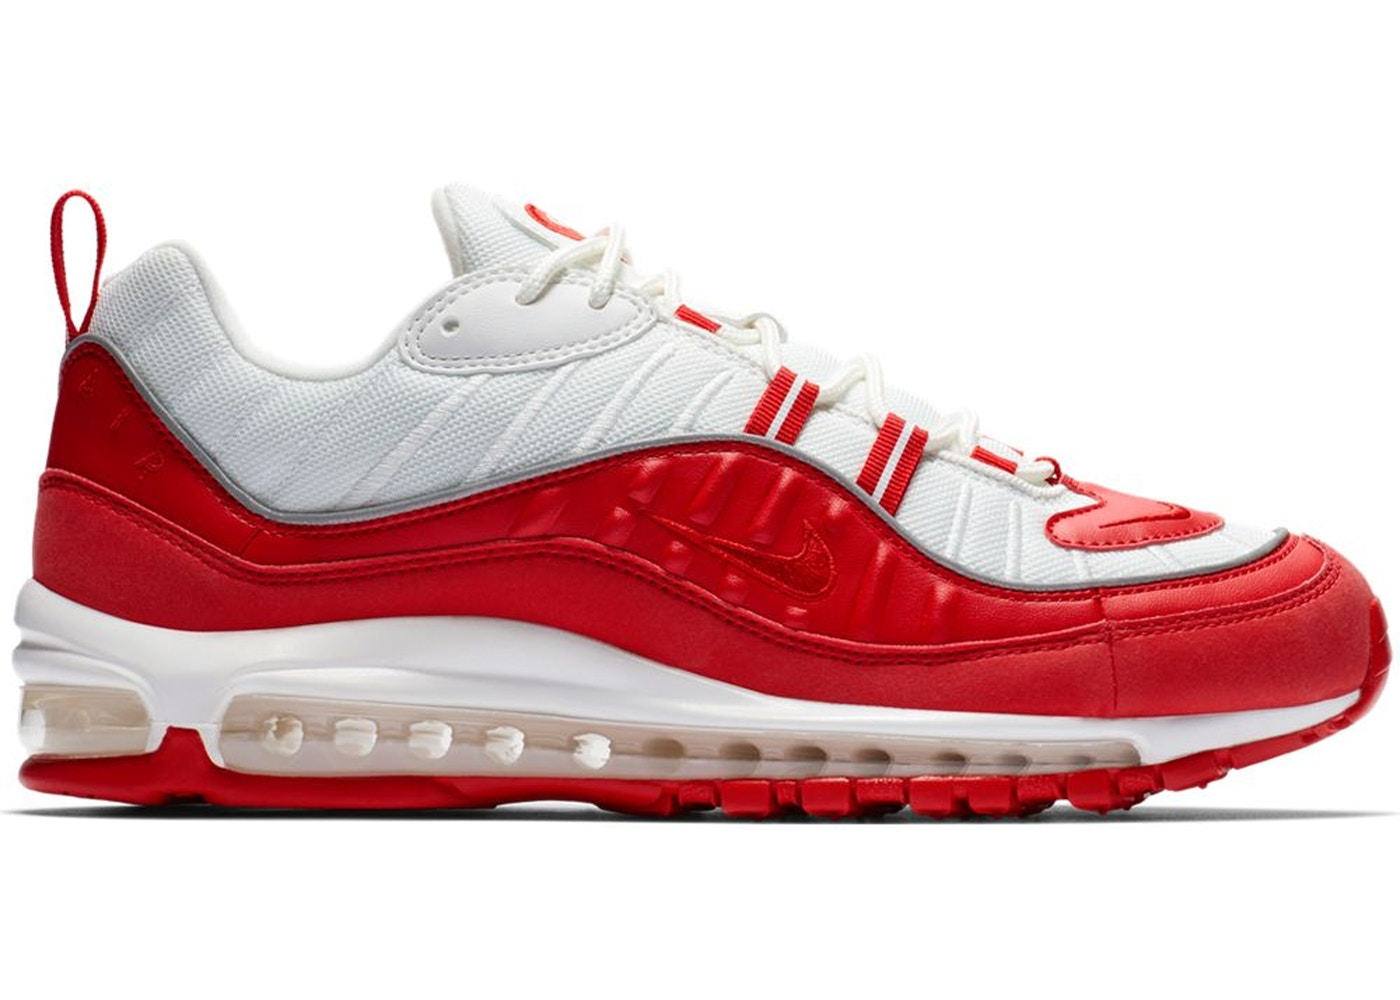 b8042135e9 Details about Mens Nike Air Max 98 University Red White 640744-602